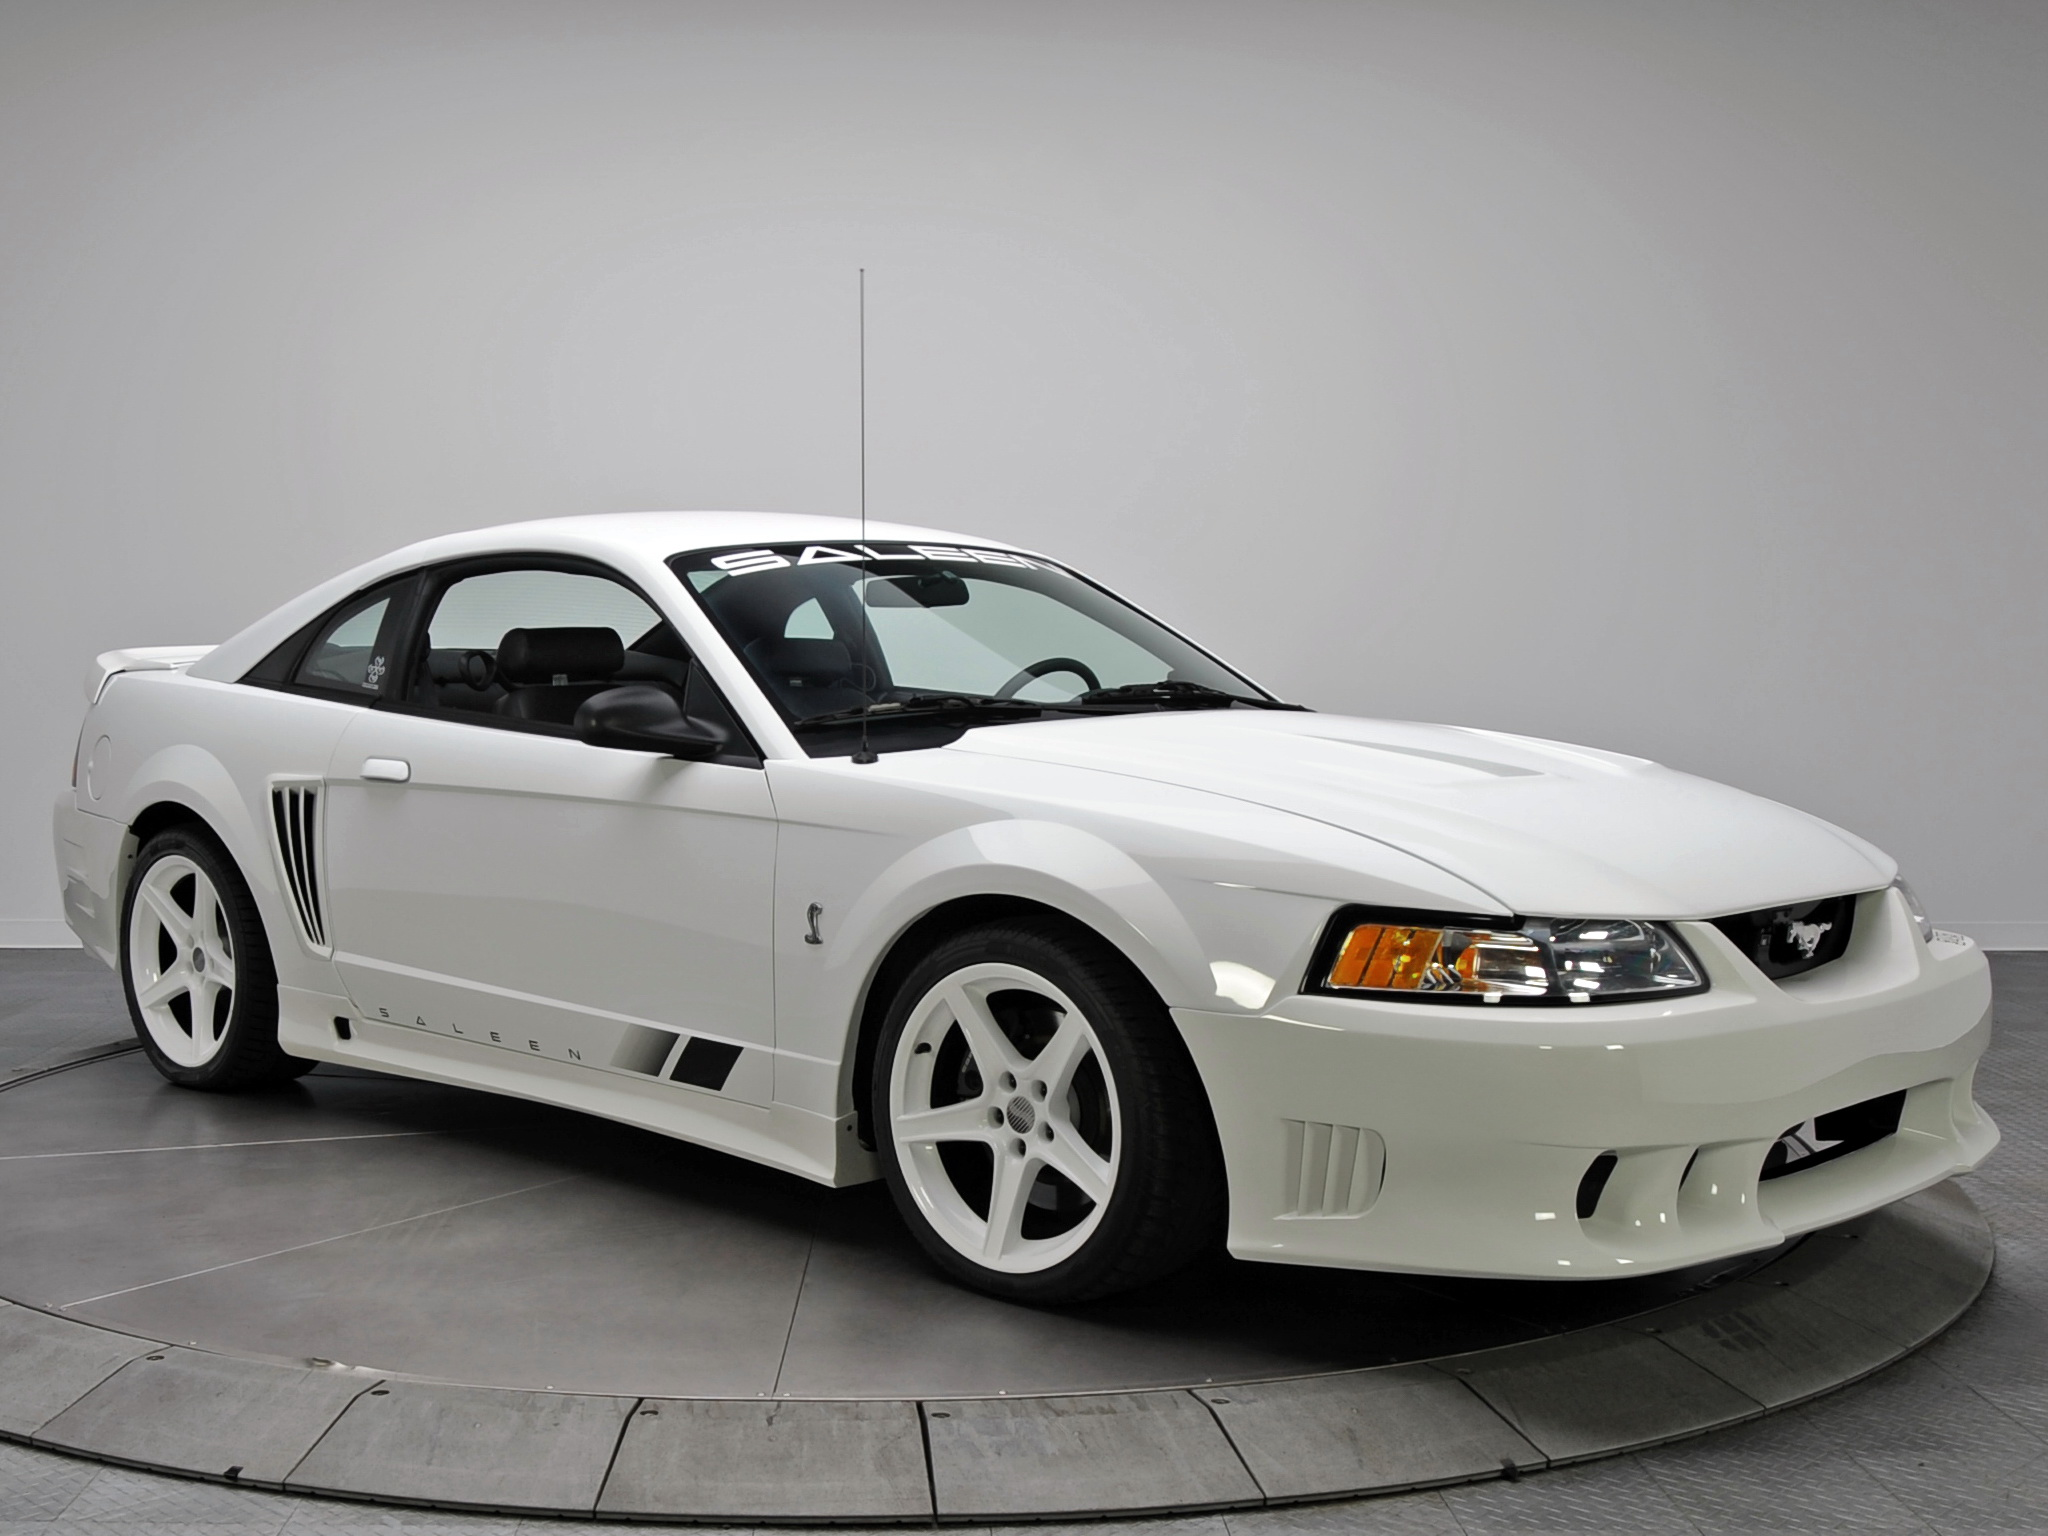 Cl Mustang >> 3DTuning of Mustang Saleen S281 Coupe 2000 3DTuning.com ...